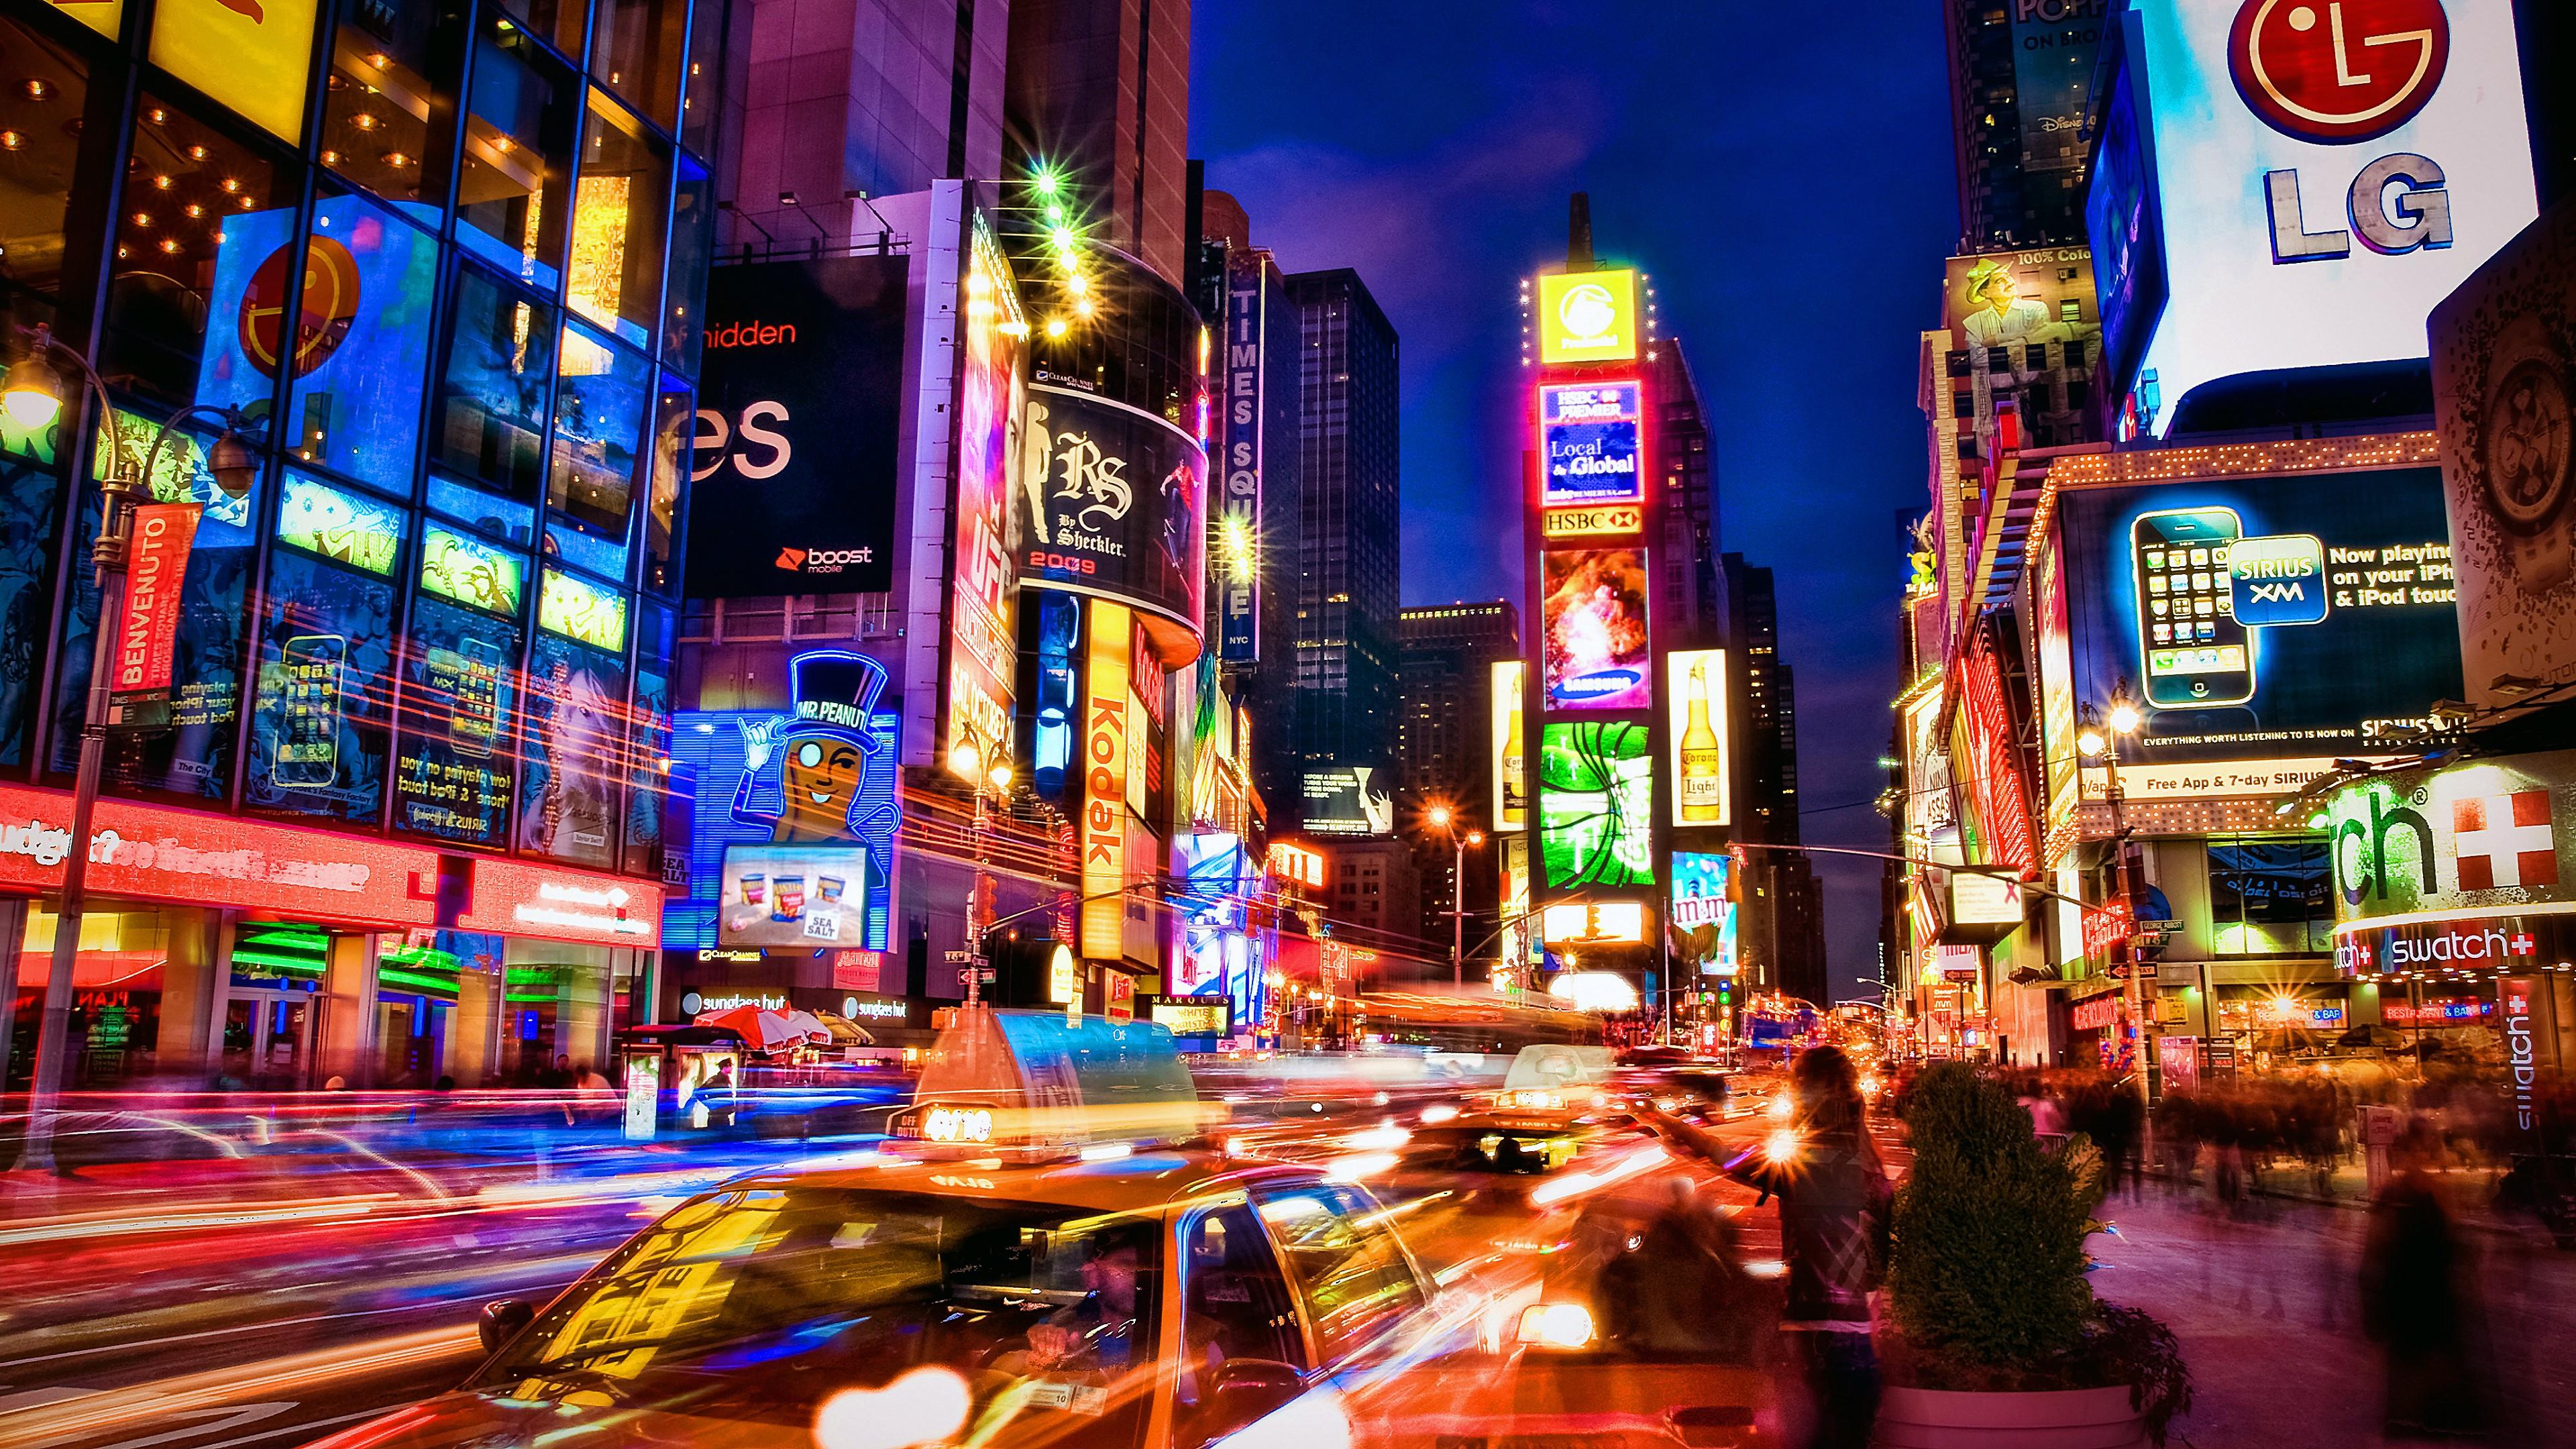 Times Square At Night Wallpapers Top Free Times Square At Night Backgrounds Wallpaperaccess